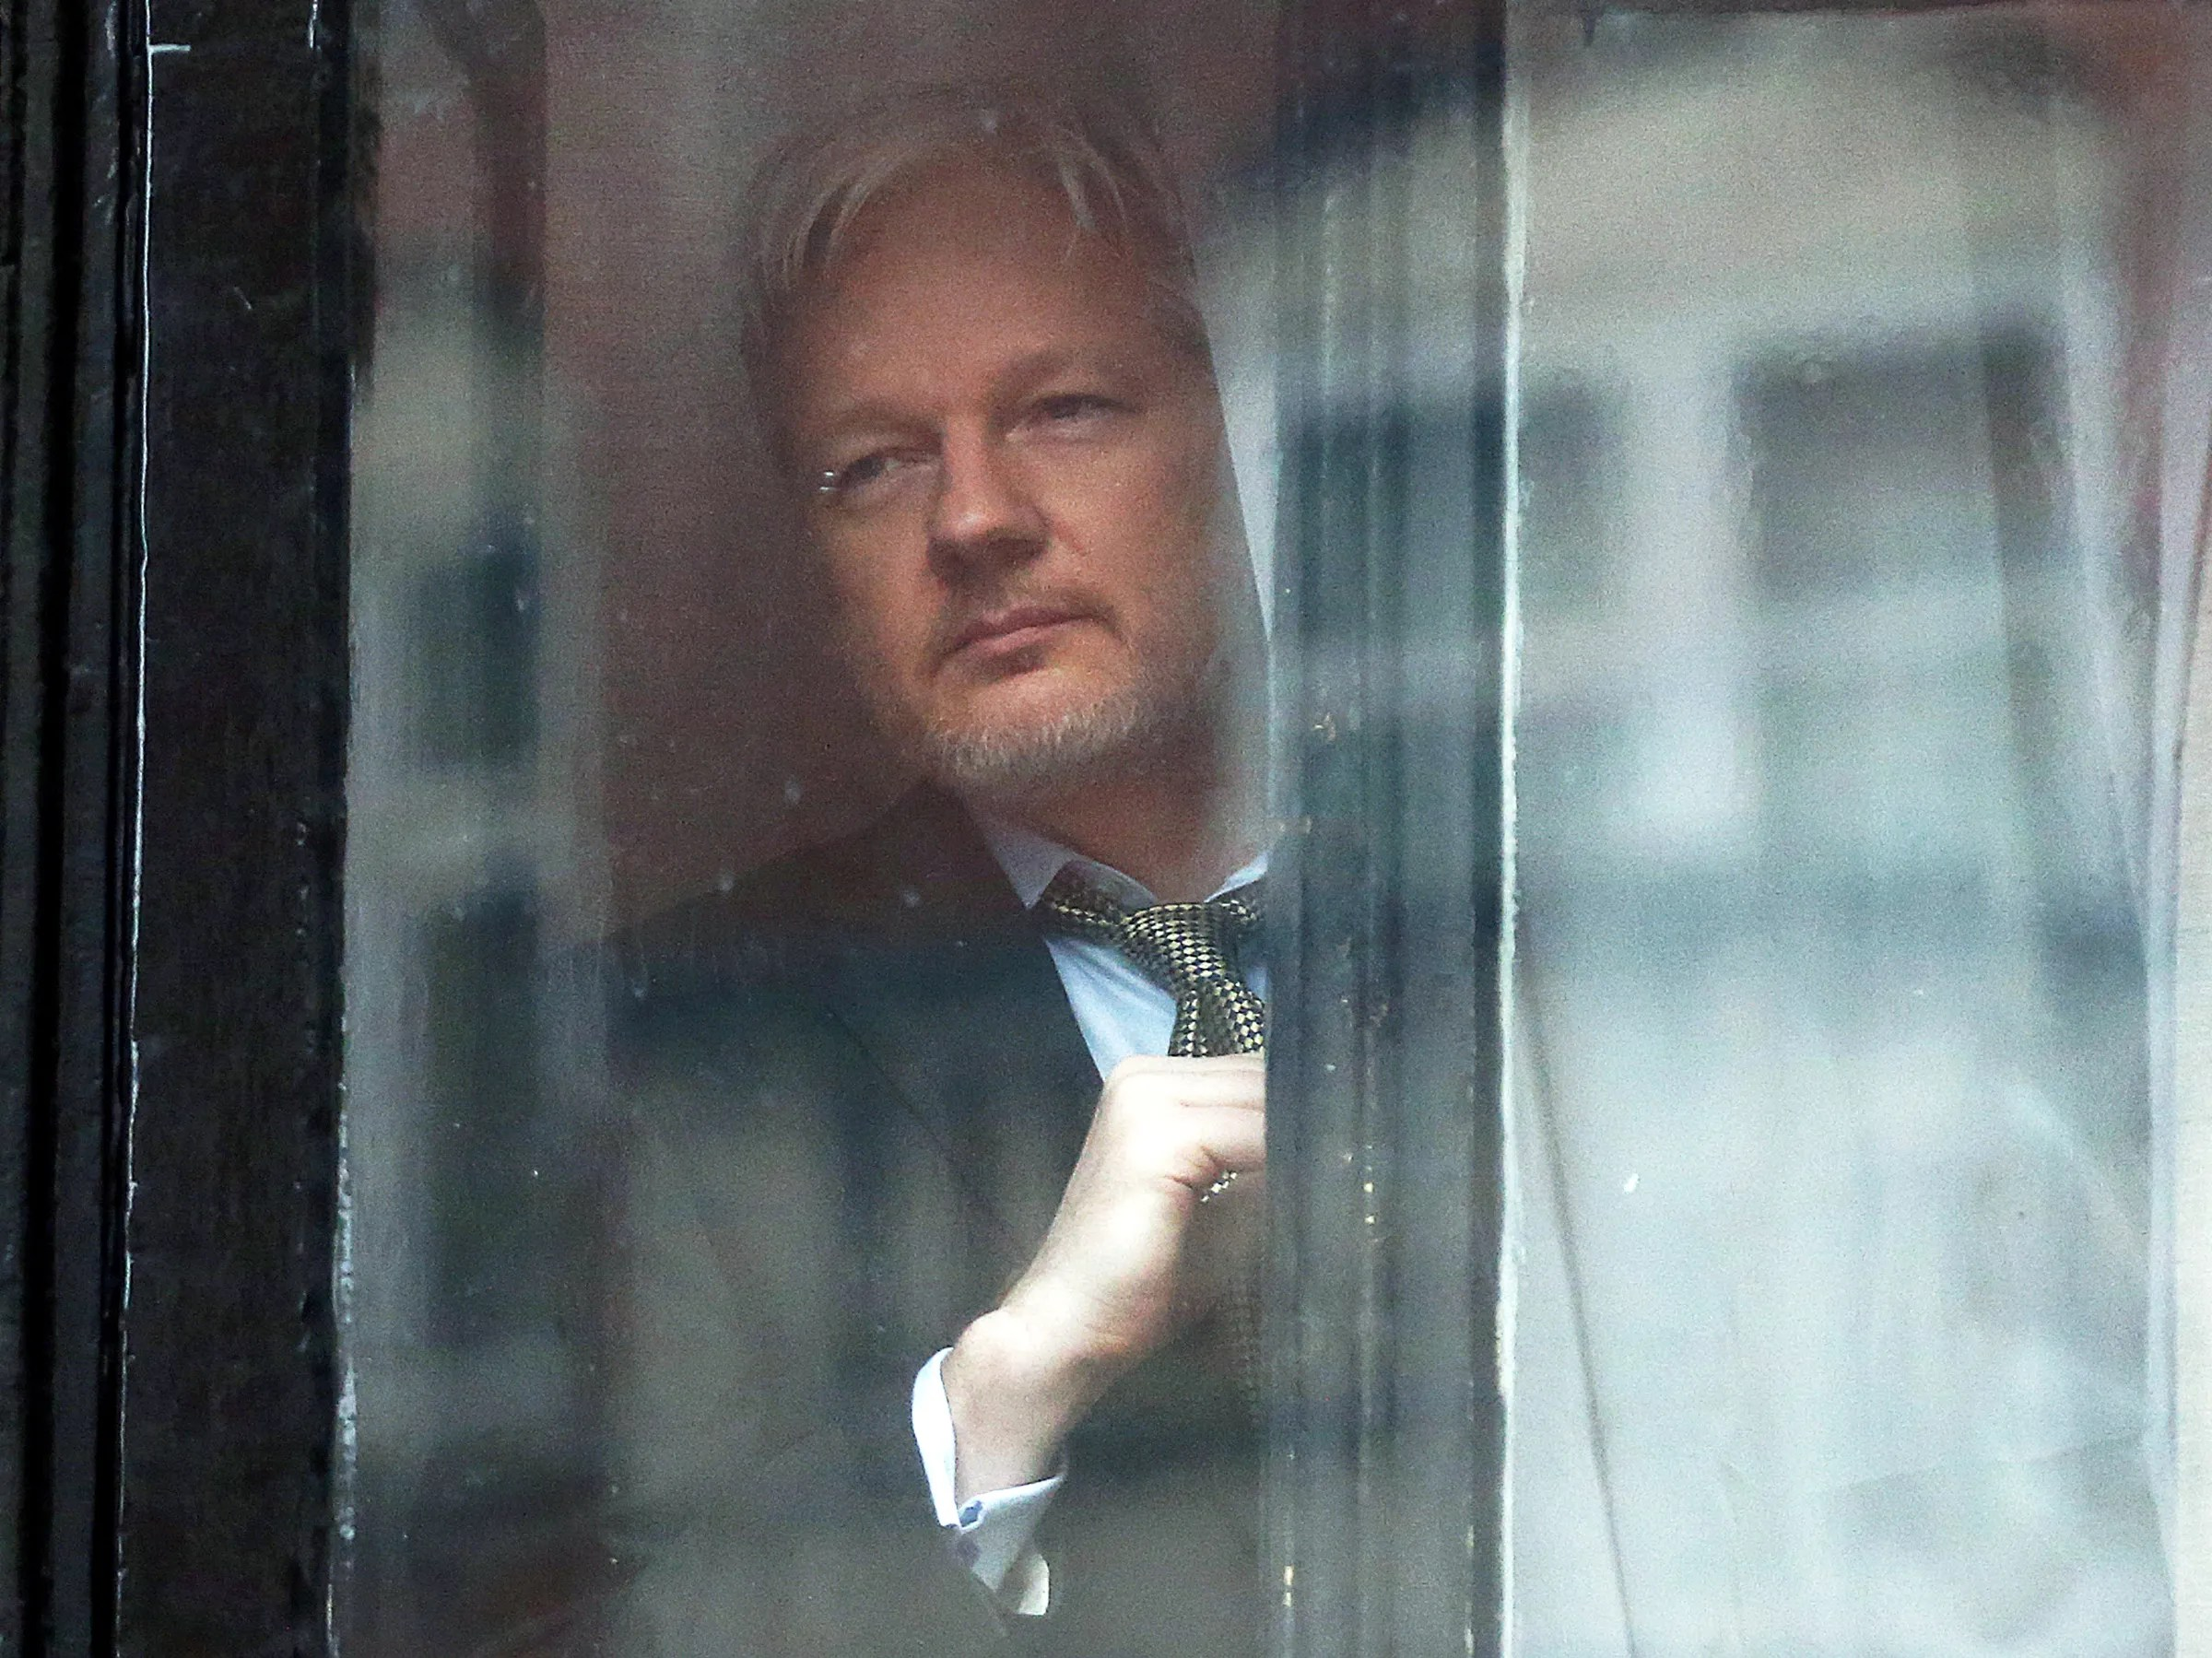 Latest Pictures The Latest Julian Assange Indictment Is An Assault On Press